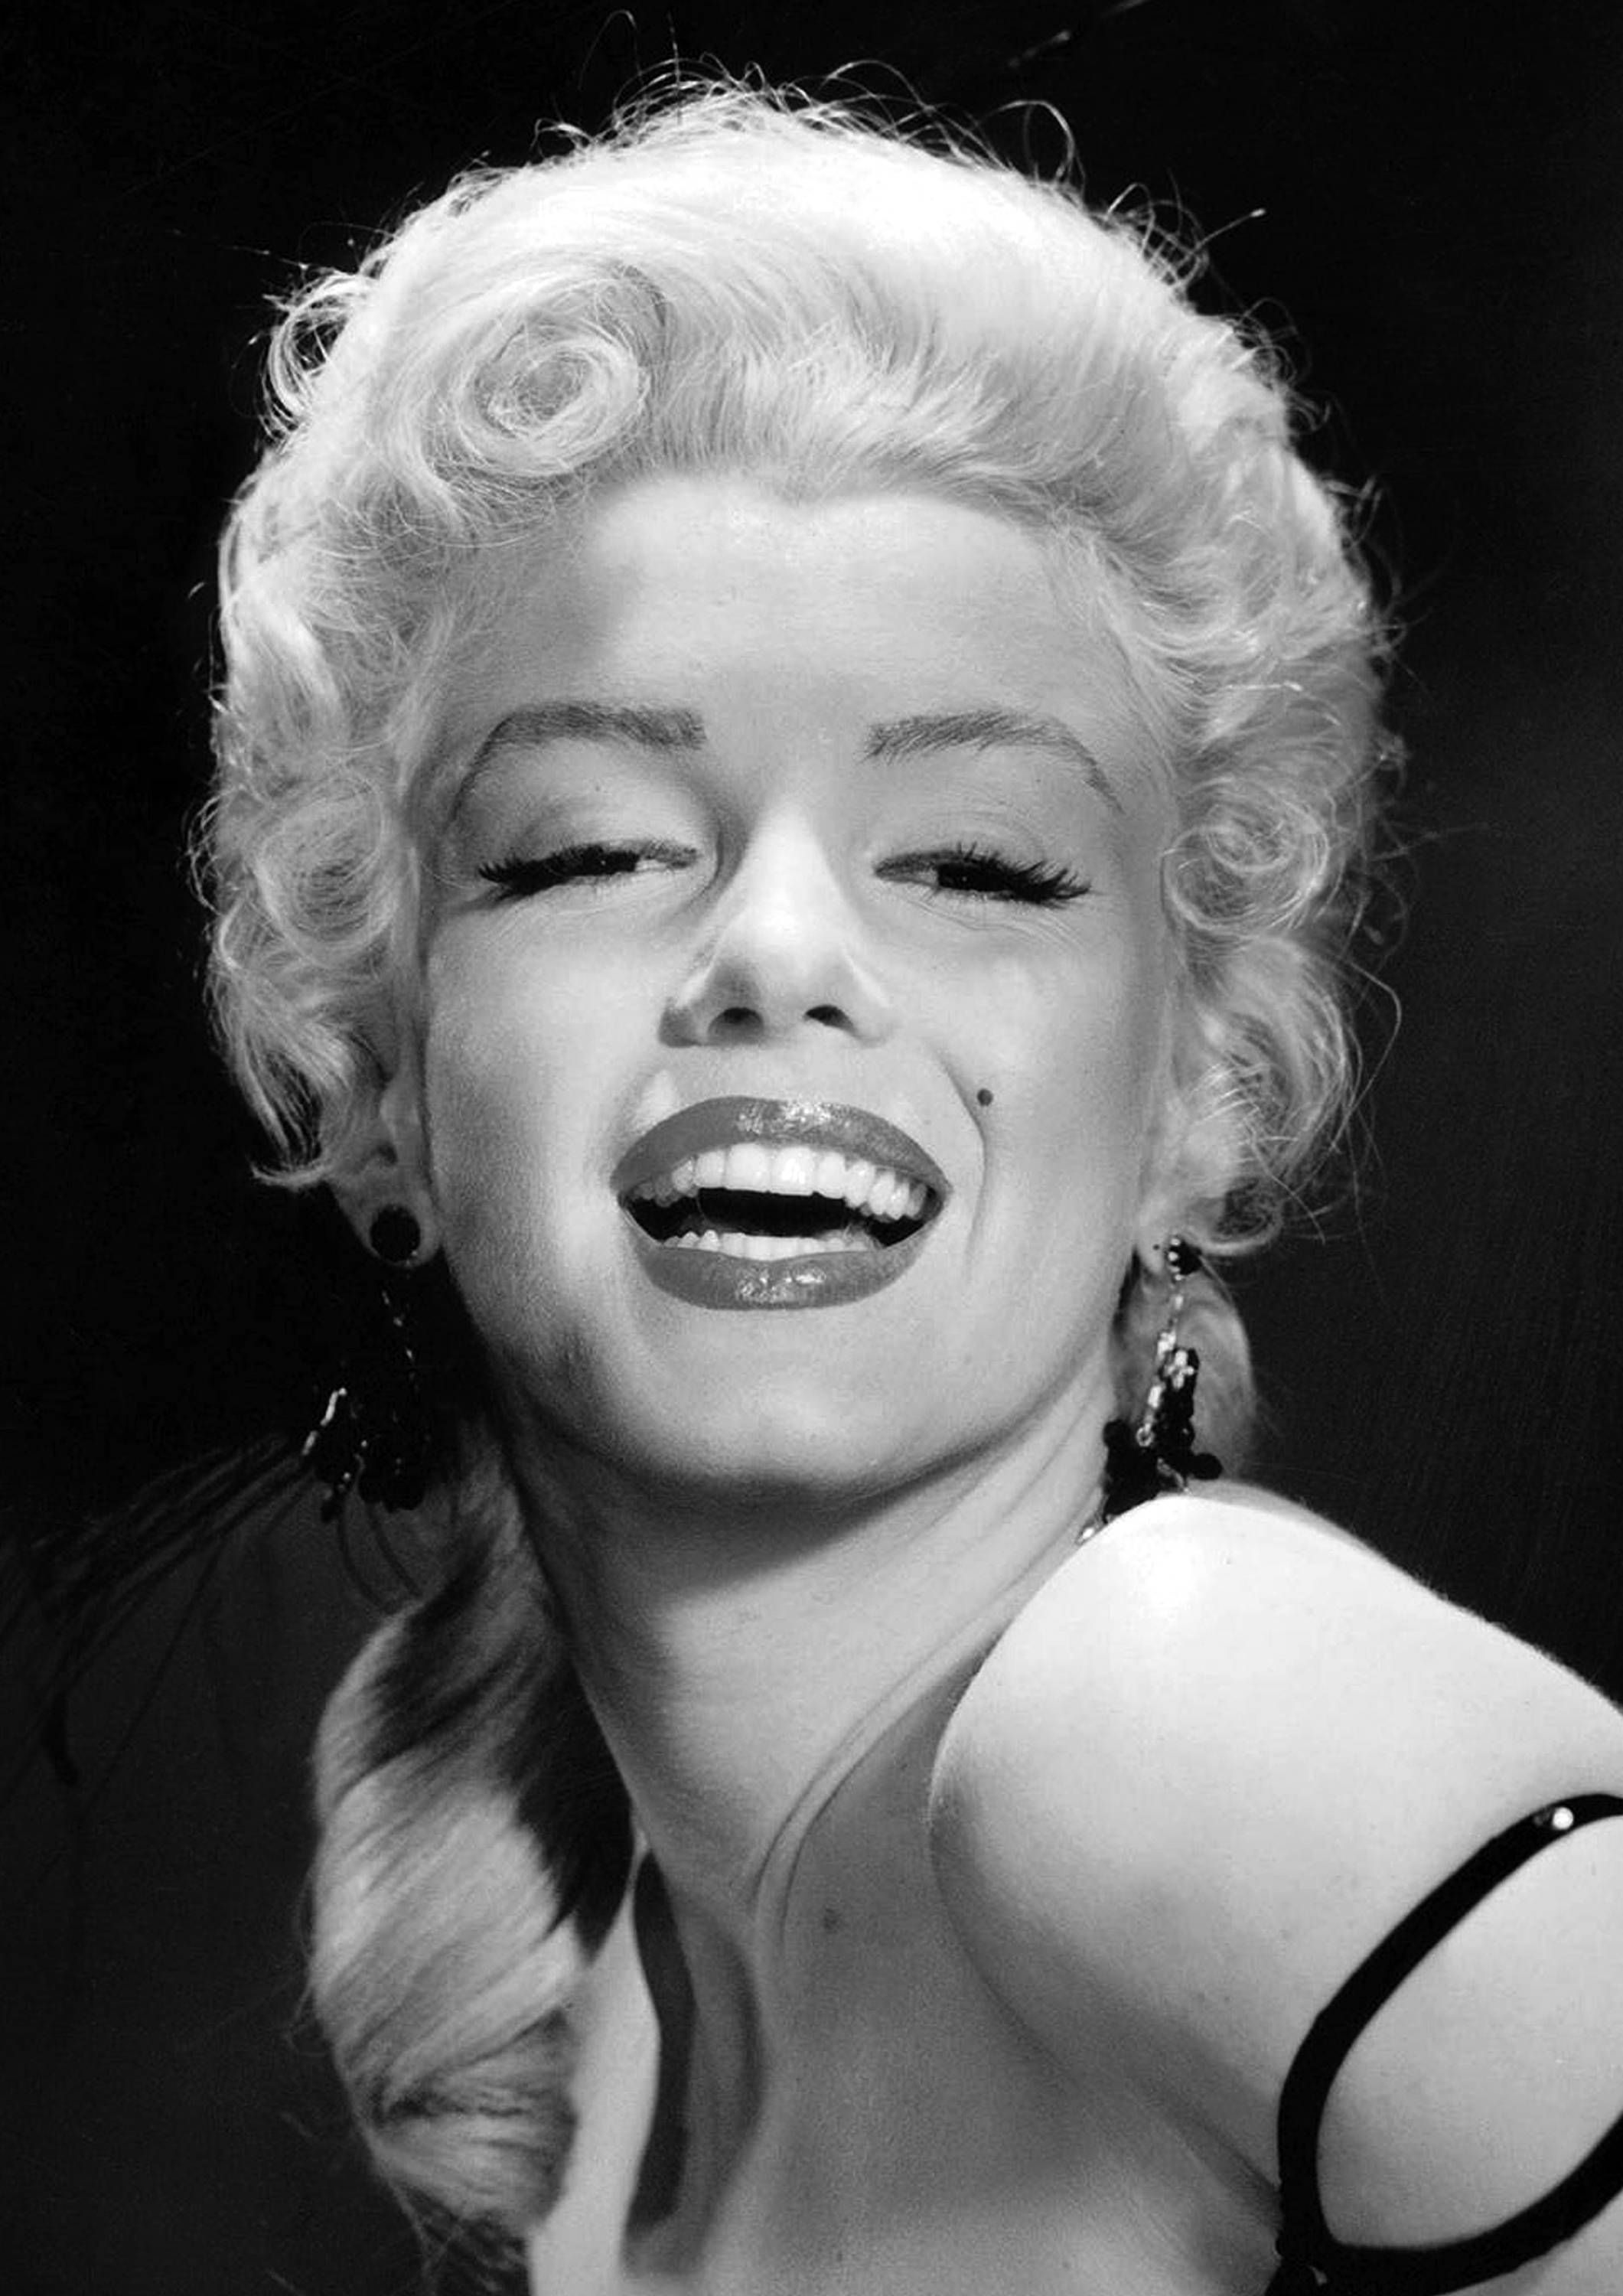 Marilyn Monroe Monochrome Photographic Print 75 (A4 Size - 210mm x ...